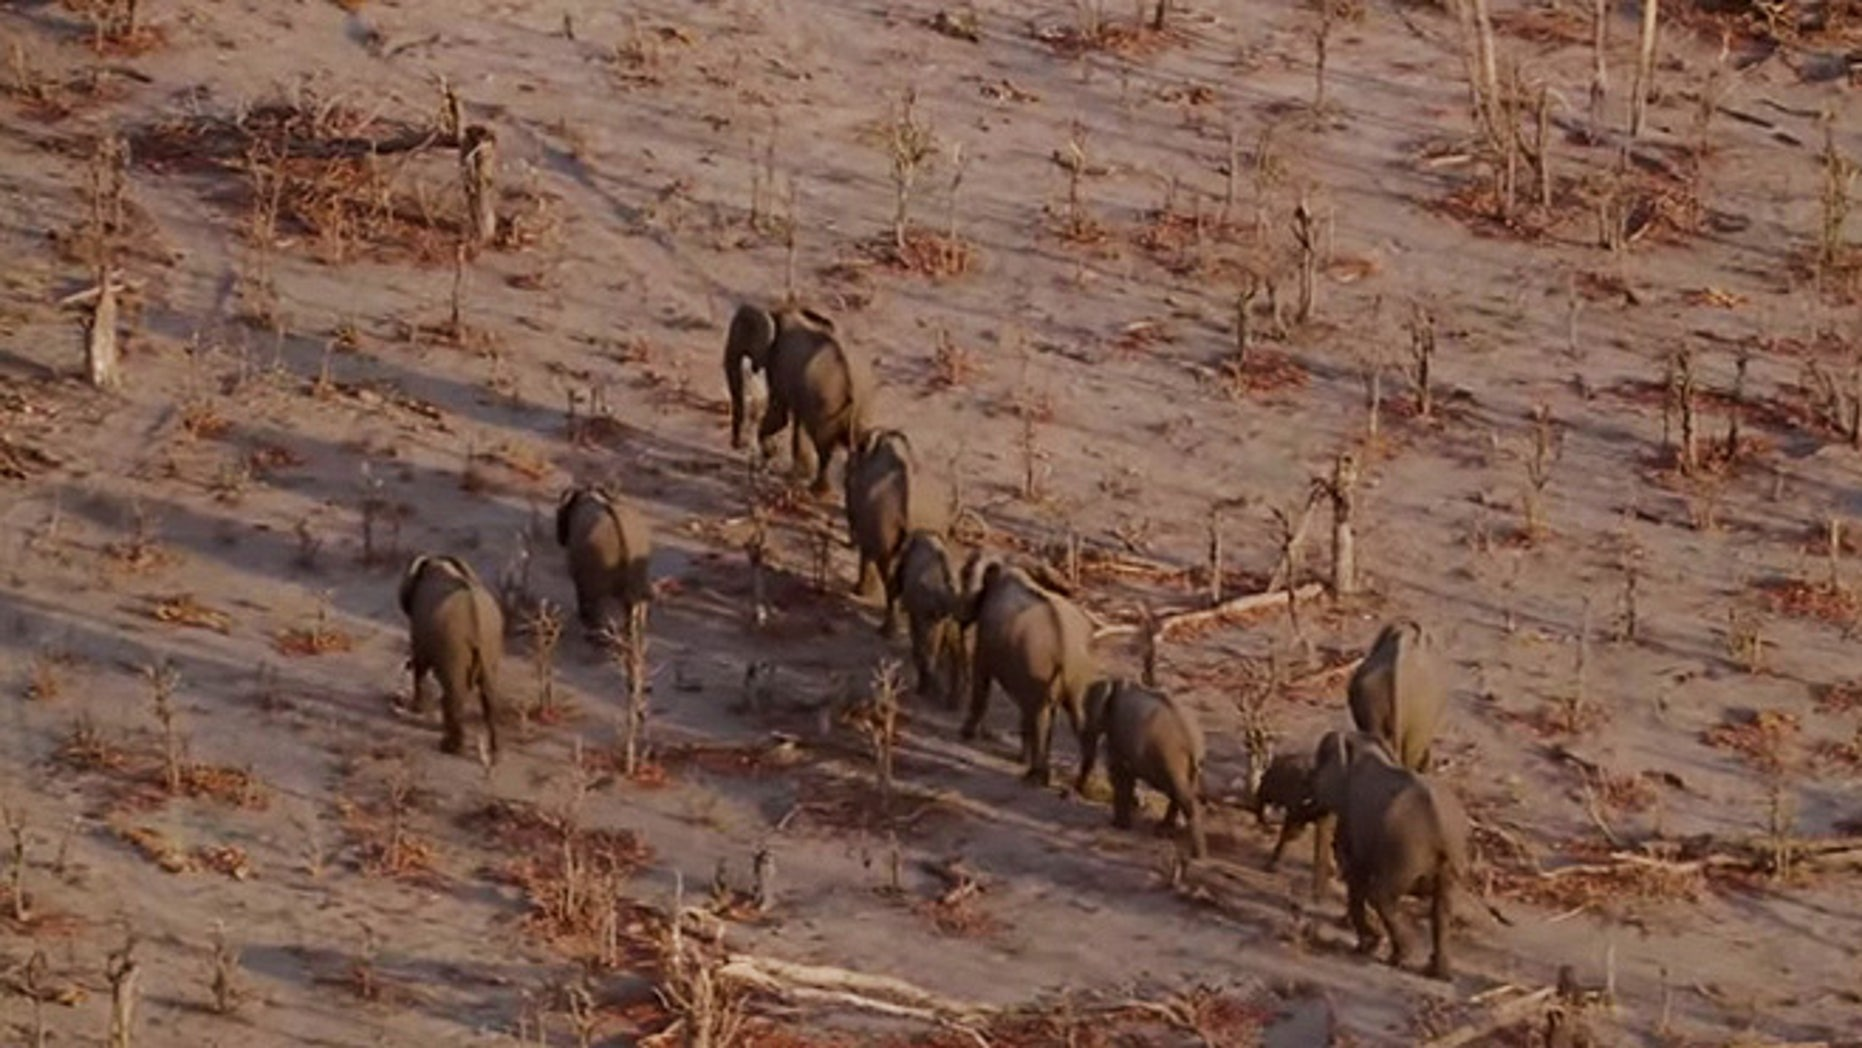 The University of Maryland and The Lindbergh Foundation are currently raising money to create Air Shepherd, a drone initiative that will will provide UAV technology and training to rangers at various state parks in Africa. (AirShepherd.org)